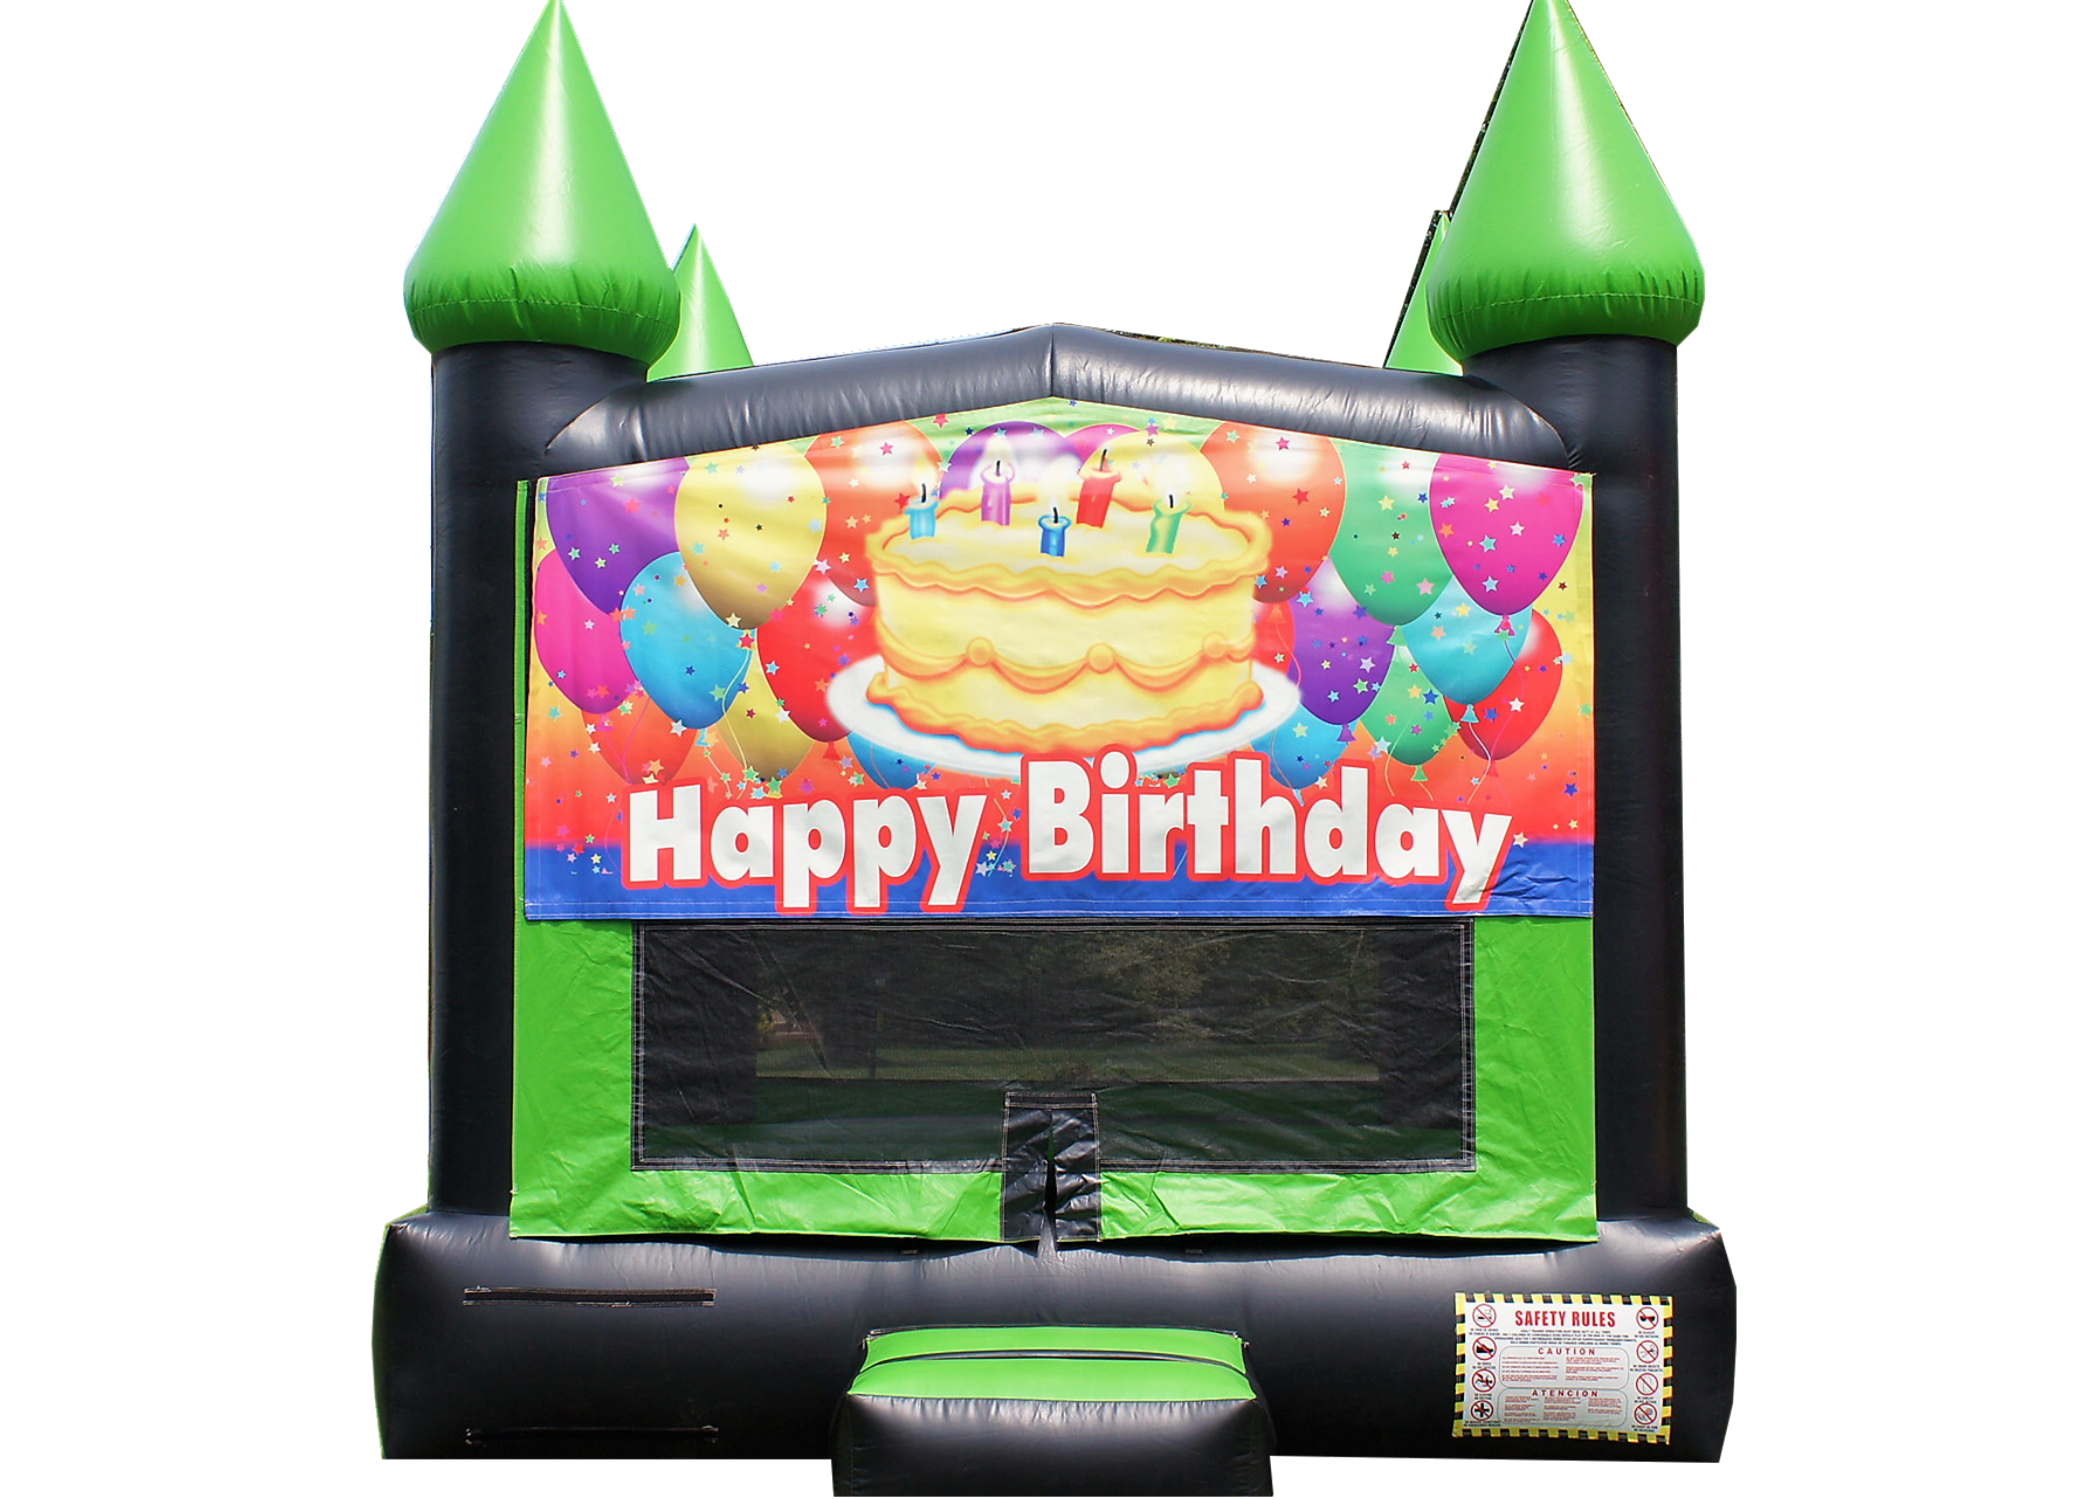 Happy b-day bounce house Nashville